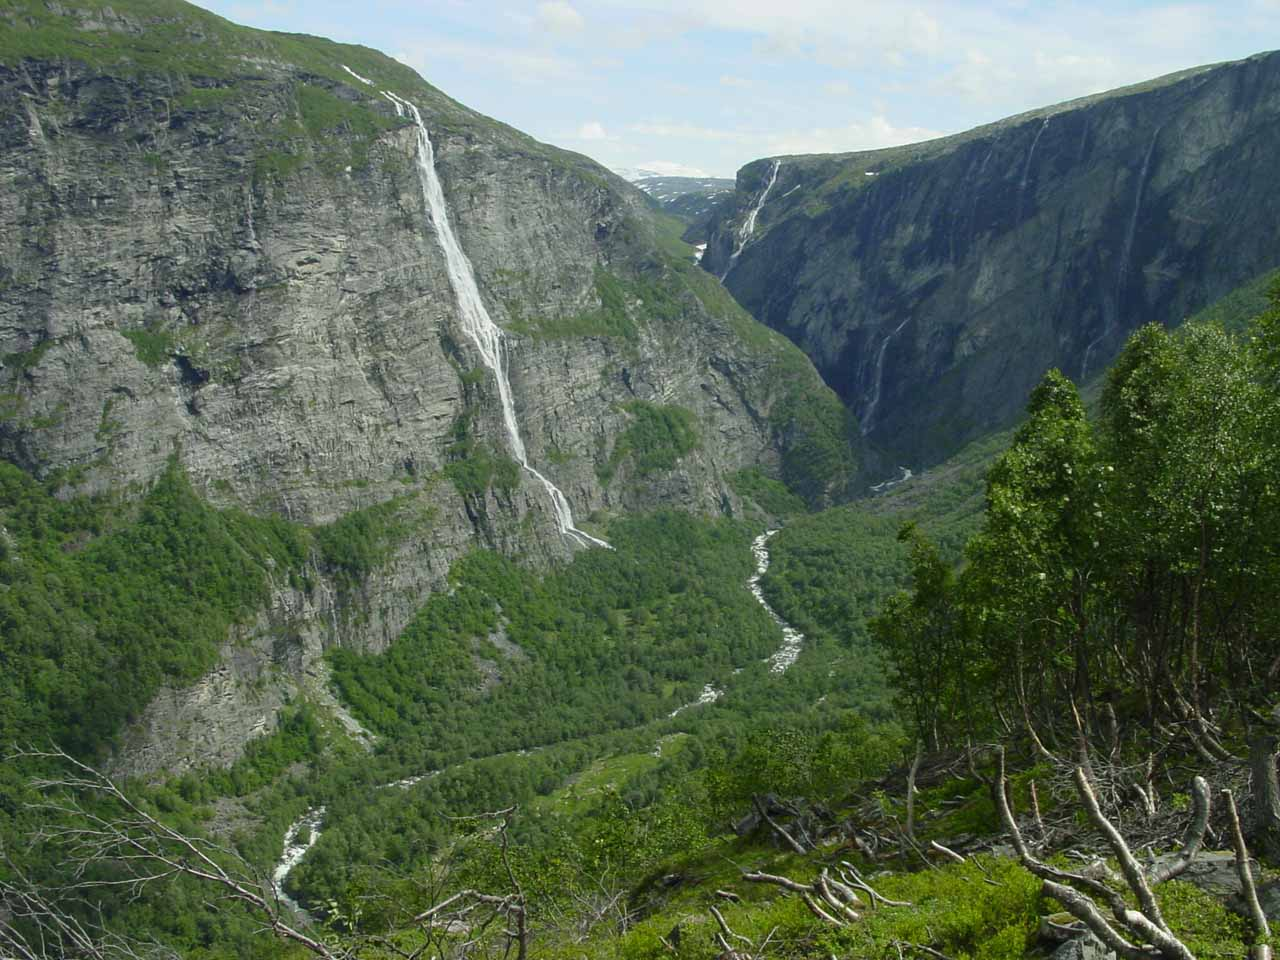 This giant waterfall was one of a series of them seen from the Aursjøvegen Road at the head of Eikesdalen.  I believe it's on the brook Slættabekken so it could be called Slættabekkfossen